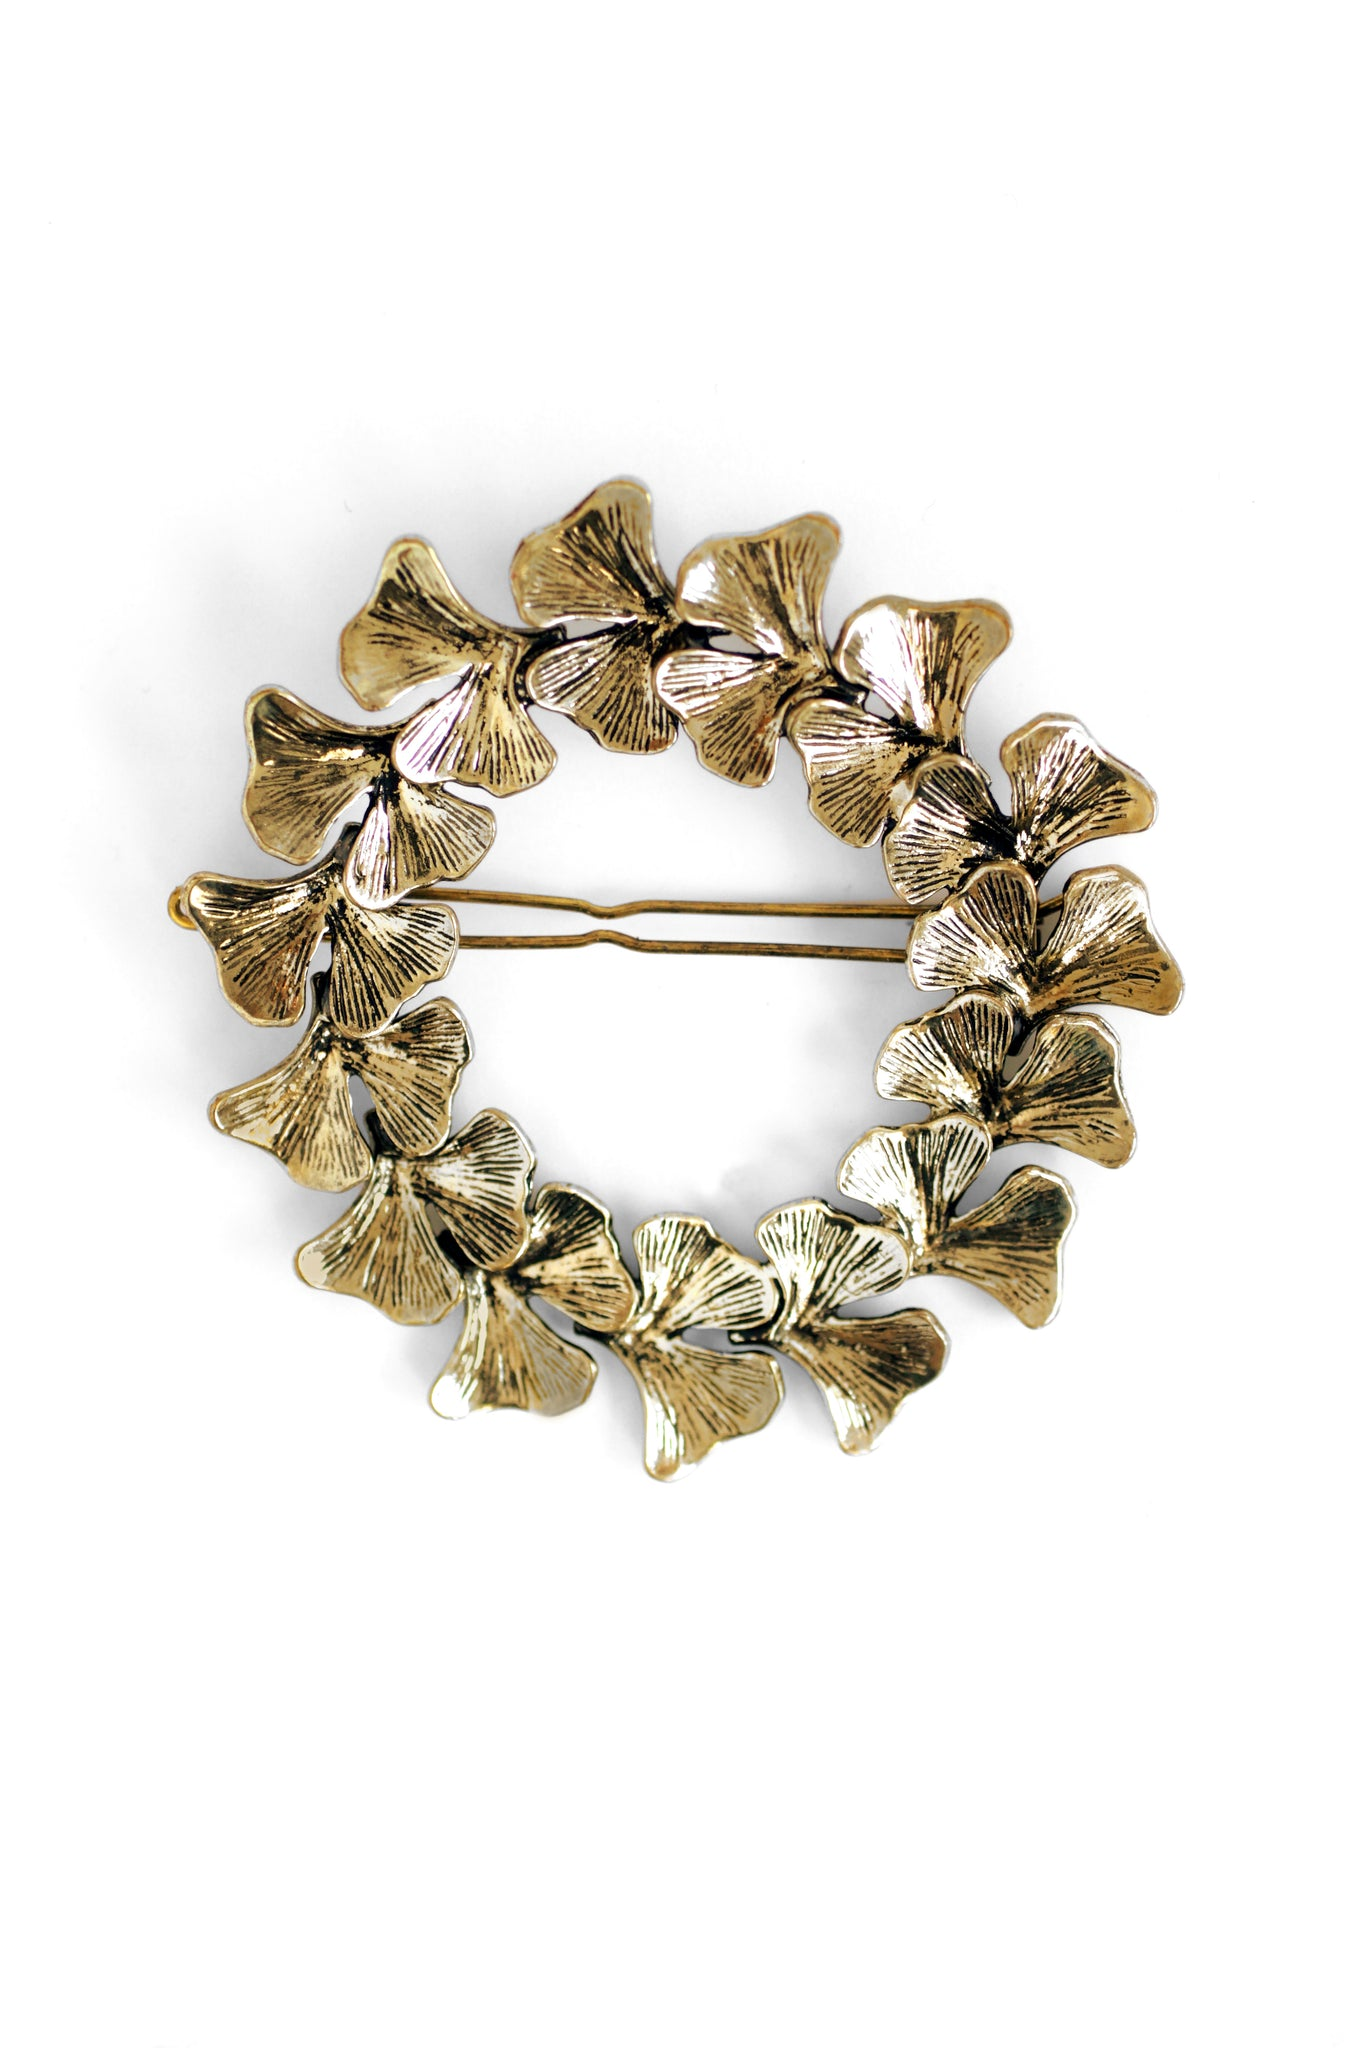 Botan Fern Wreath Statement Clip - Antique Gold